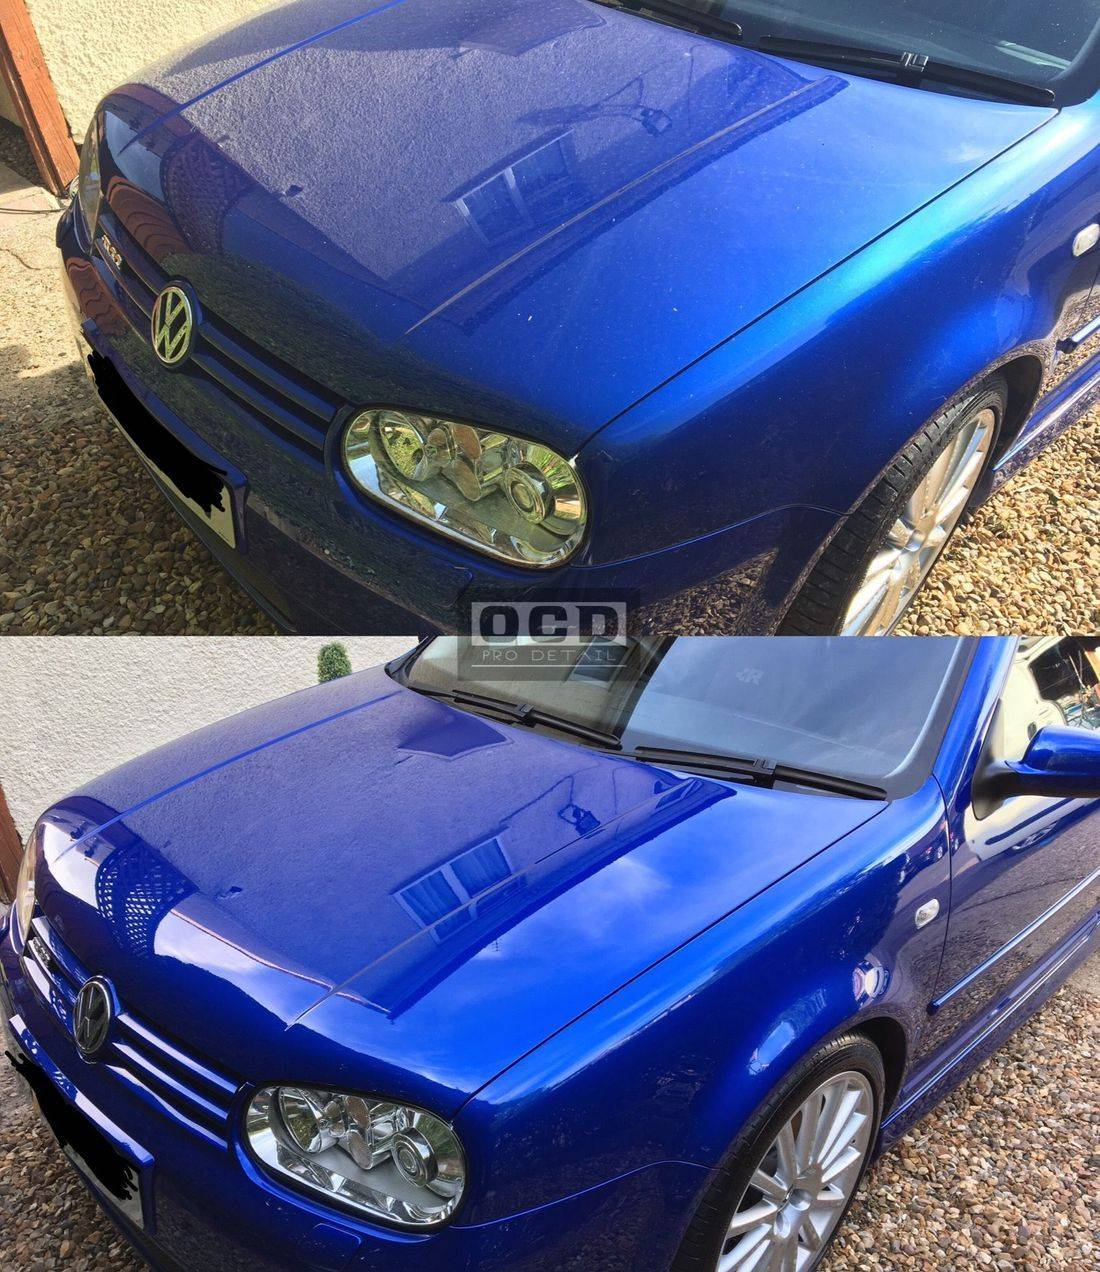 Paint Enhancement before and after shots